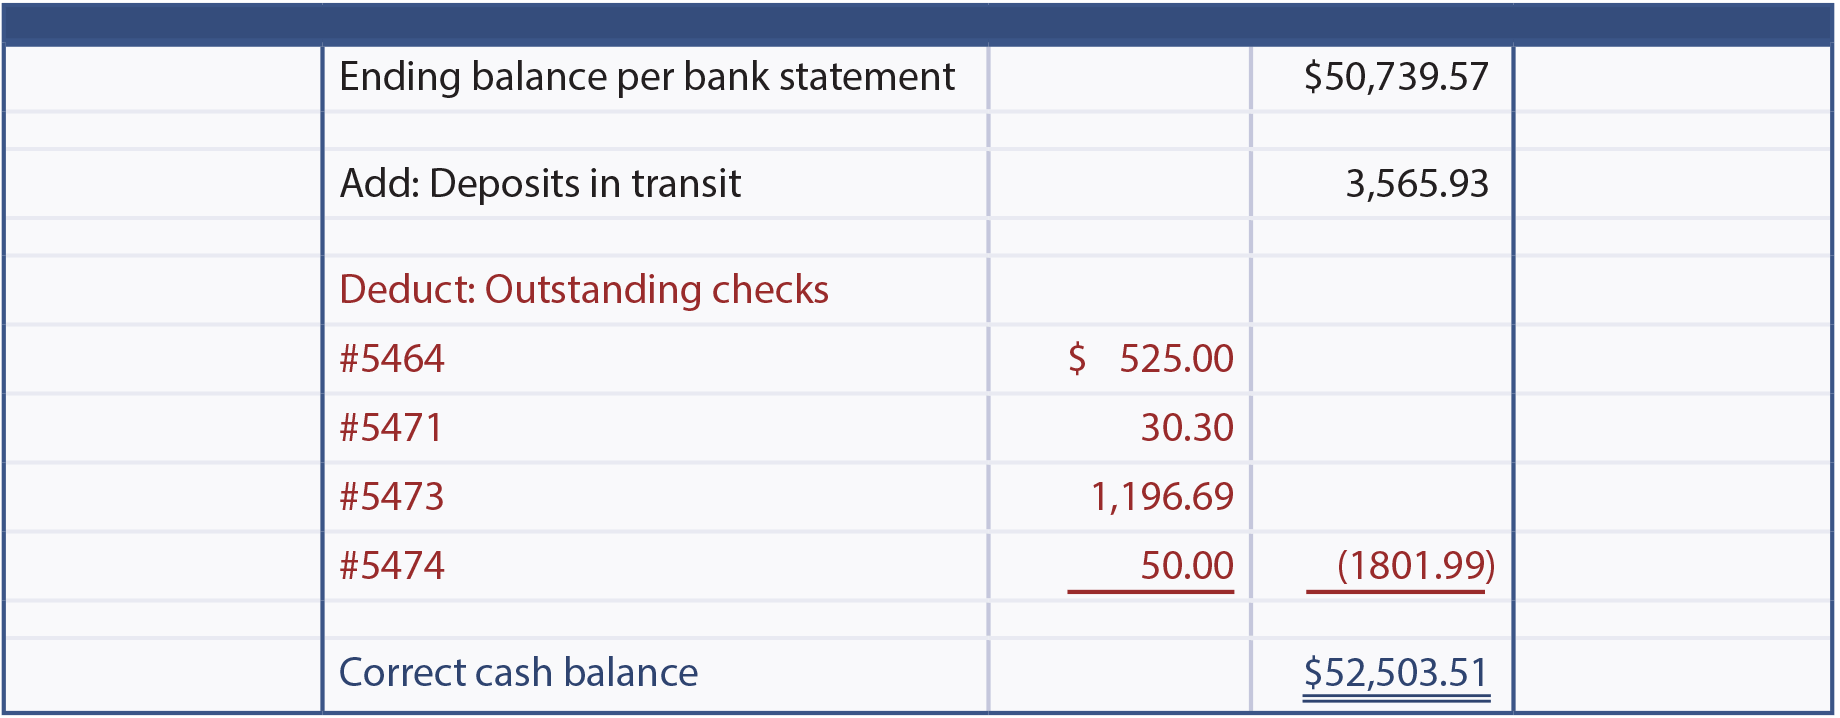 Ending Balance per Bank Statement illustration